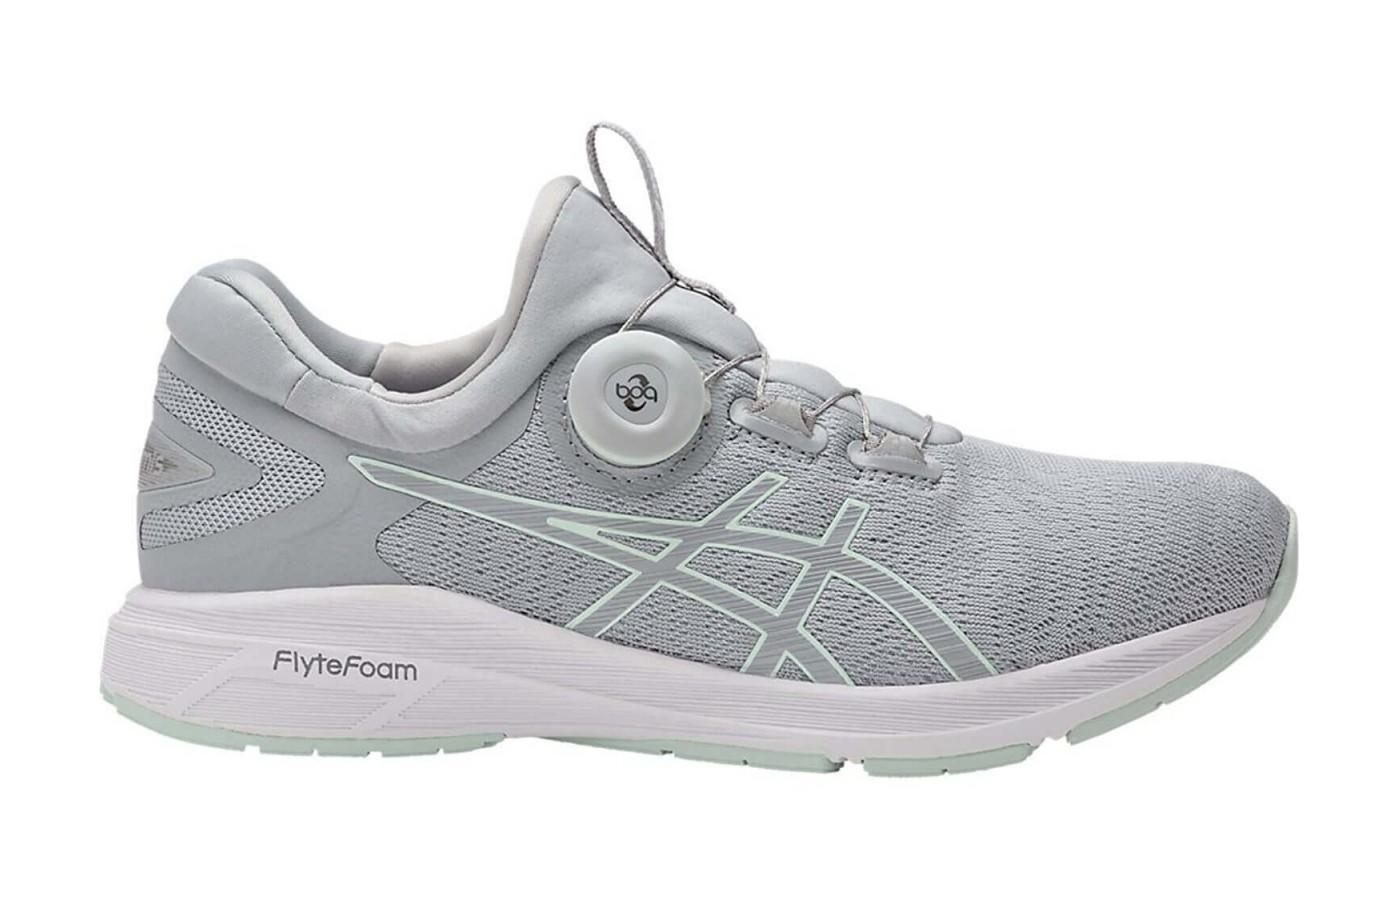 The Asics Dynamis uses a Boa Fit System for a precision fit